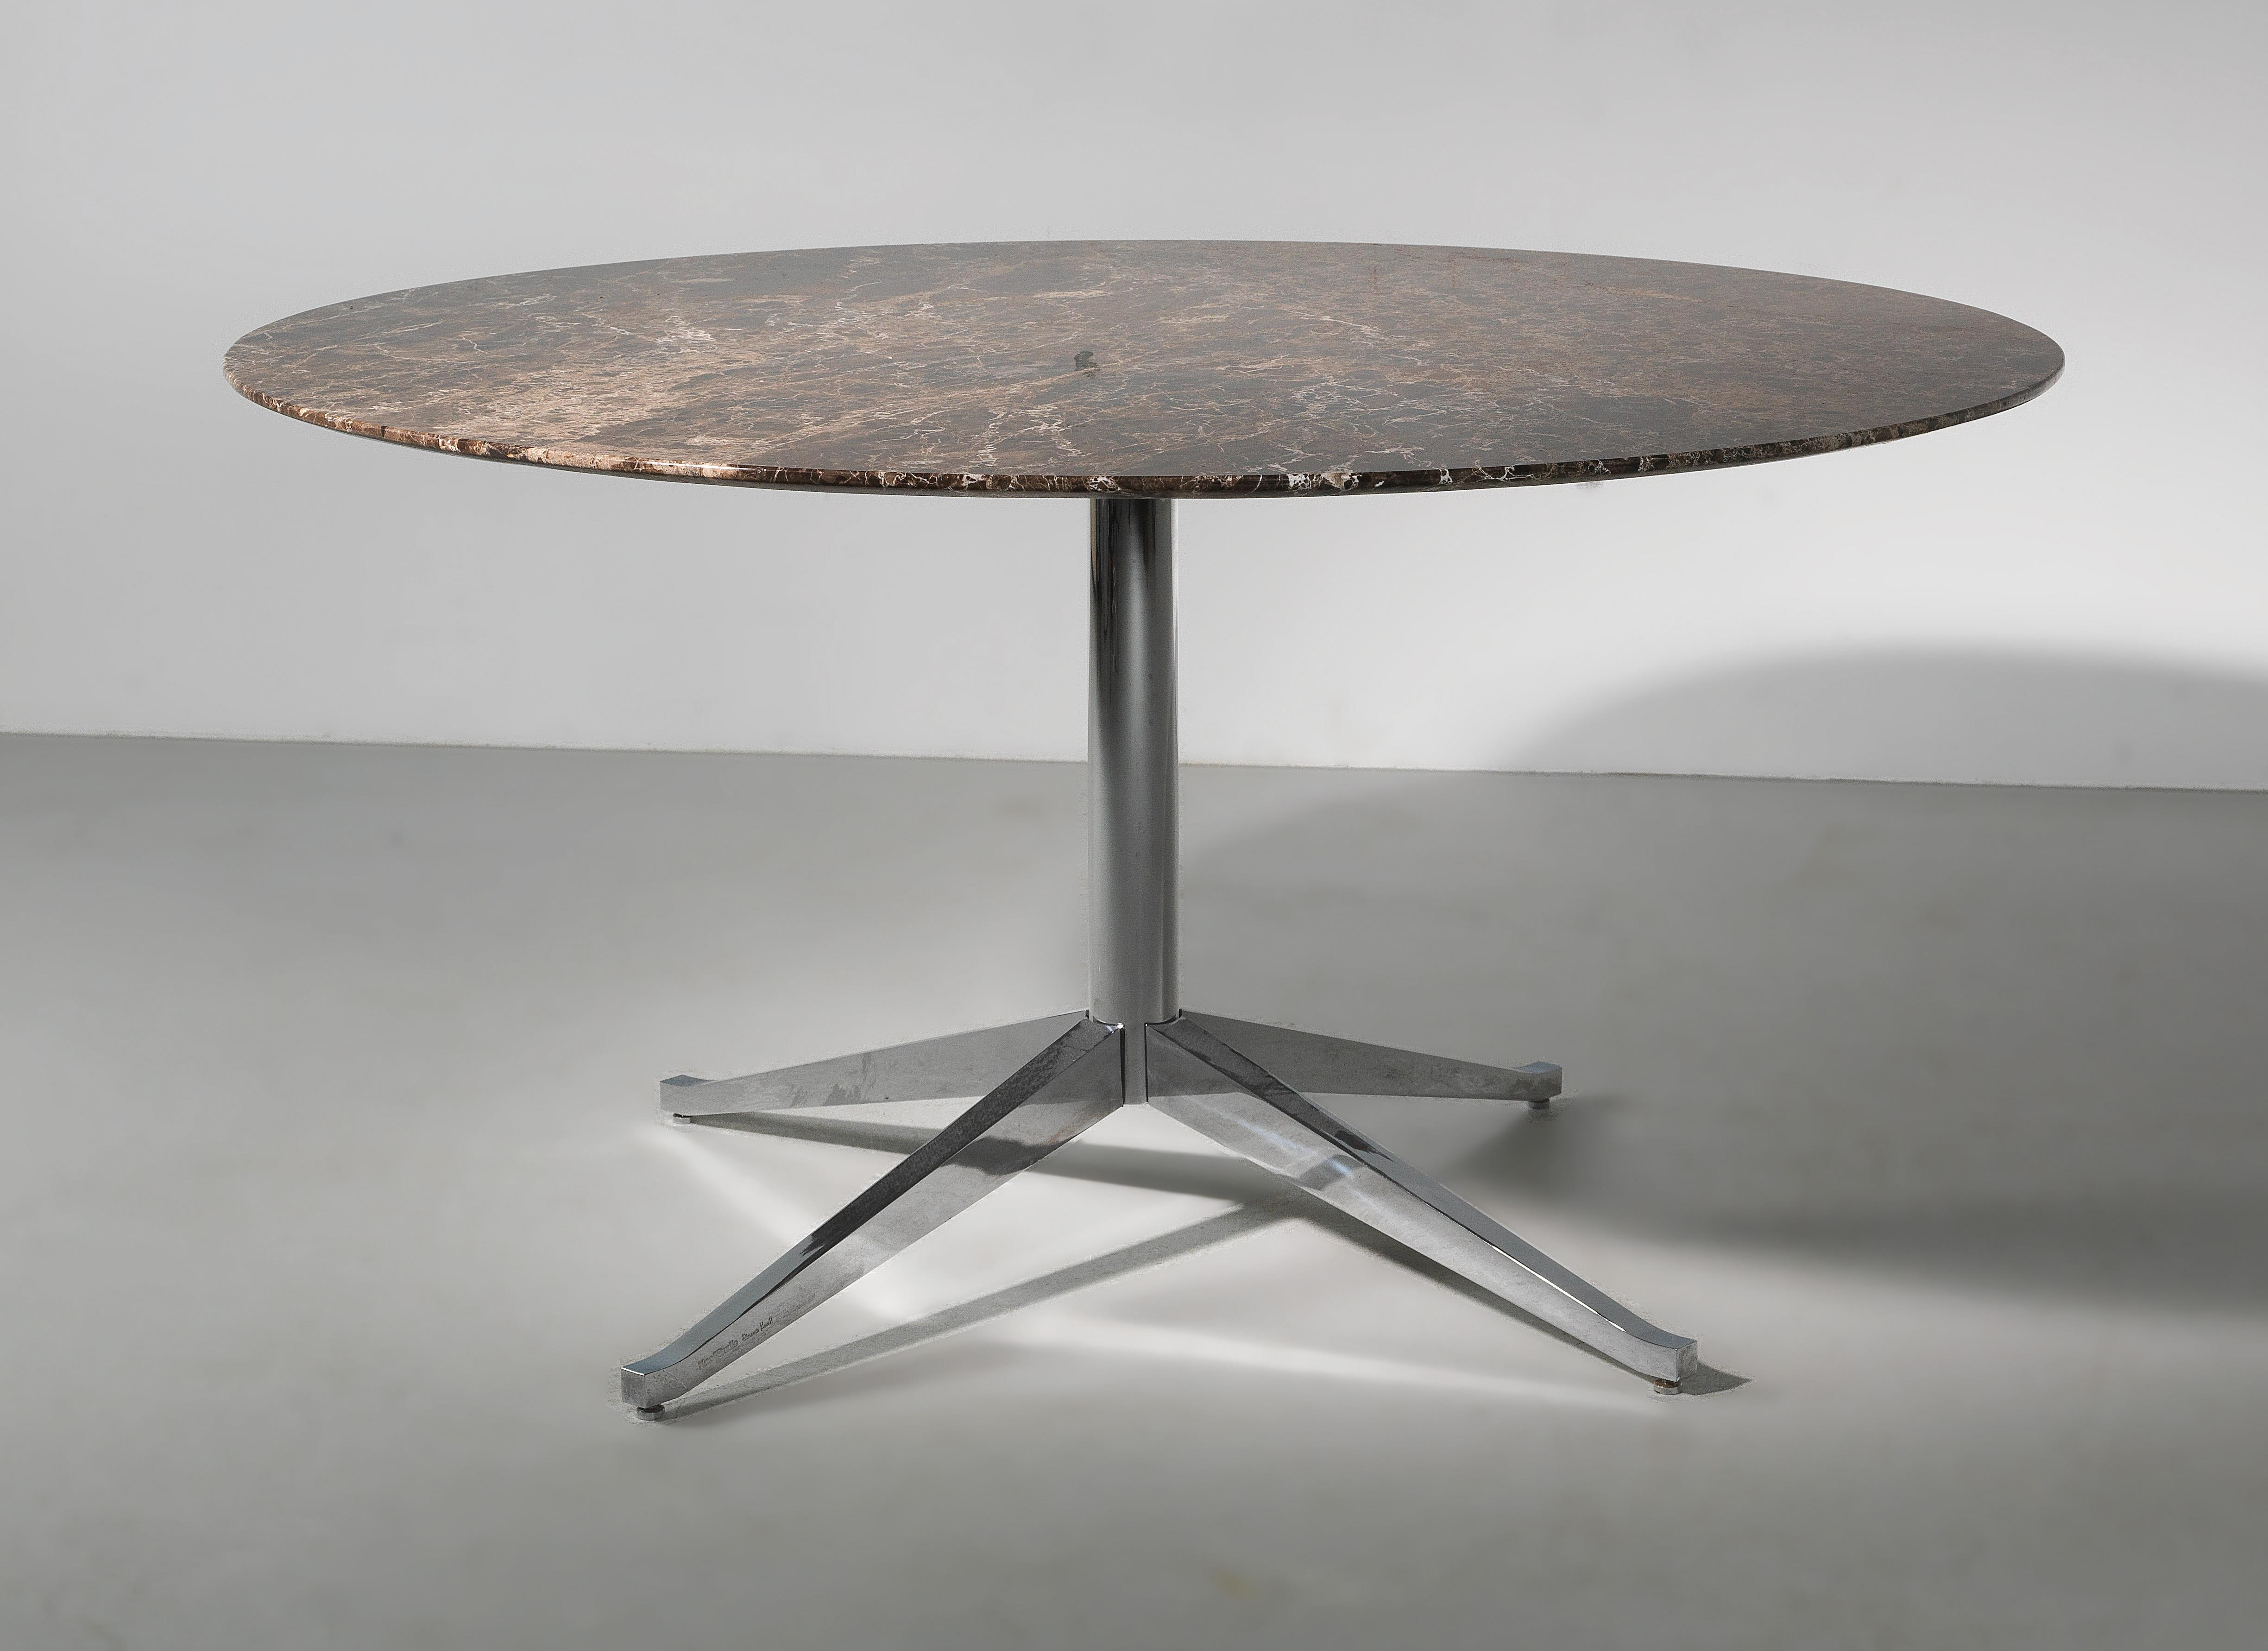 Marmortisch Cafe A Circular Marble Table Designed By Florence Knoll In 1961